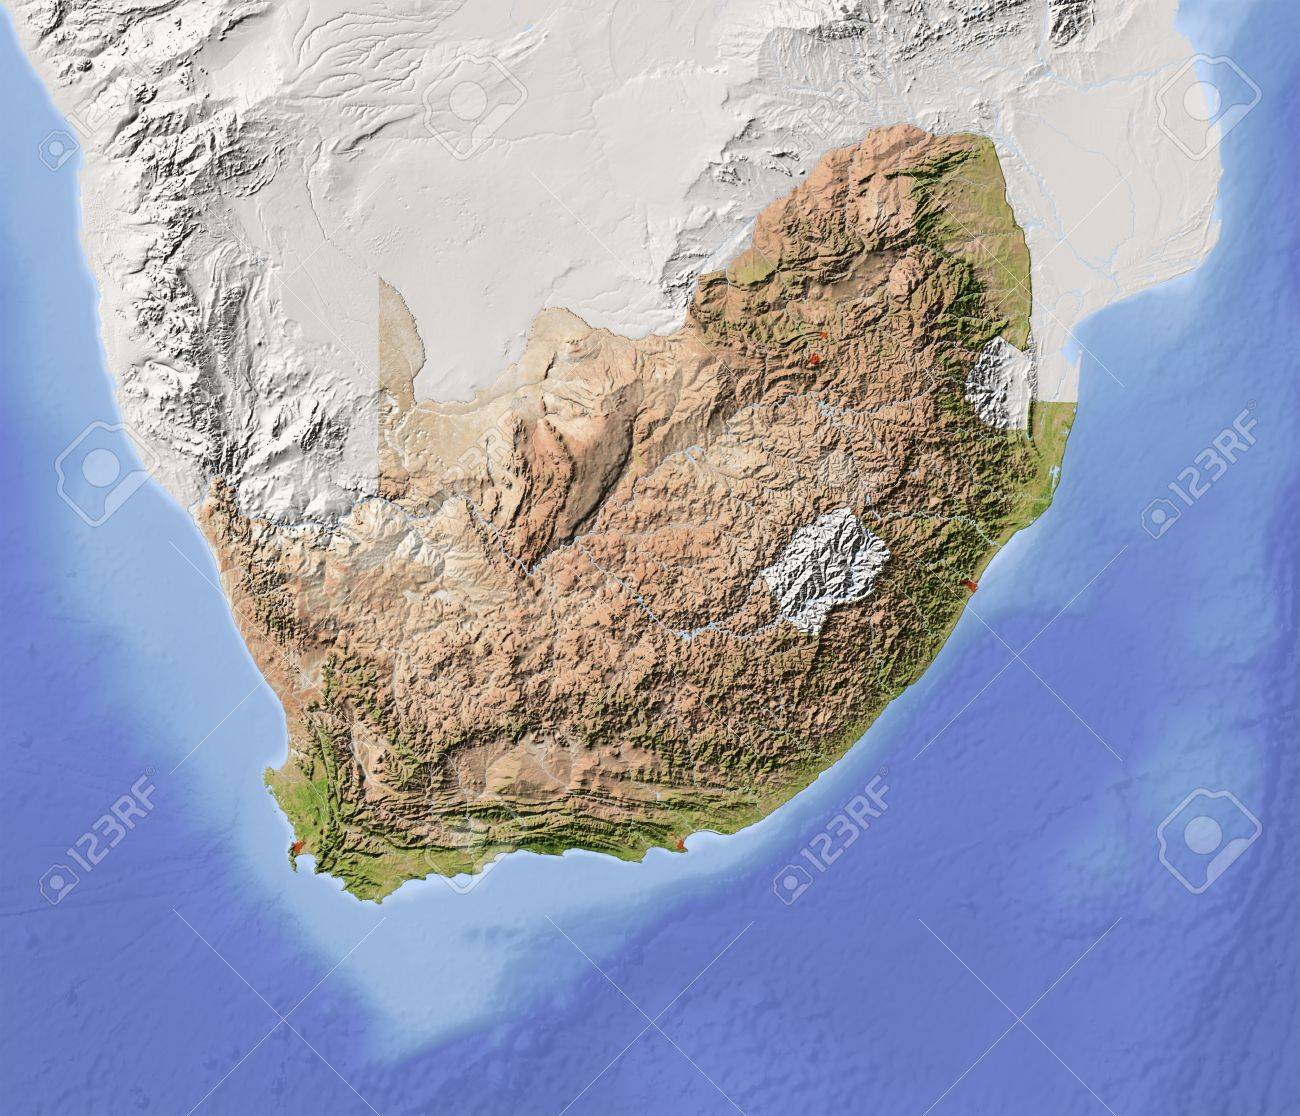 Relief Map Of Southern Africa.South Africa Shaded Relief Map With Major Urban Areas Surrounding